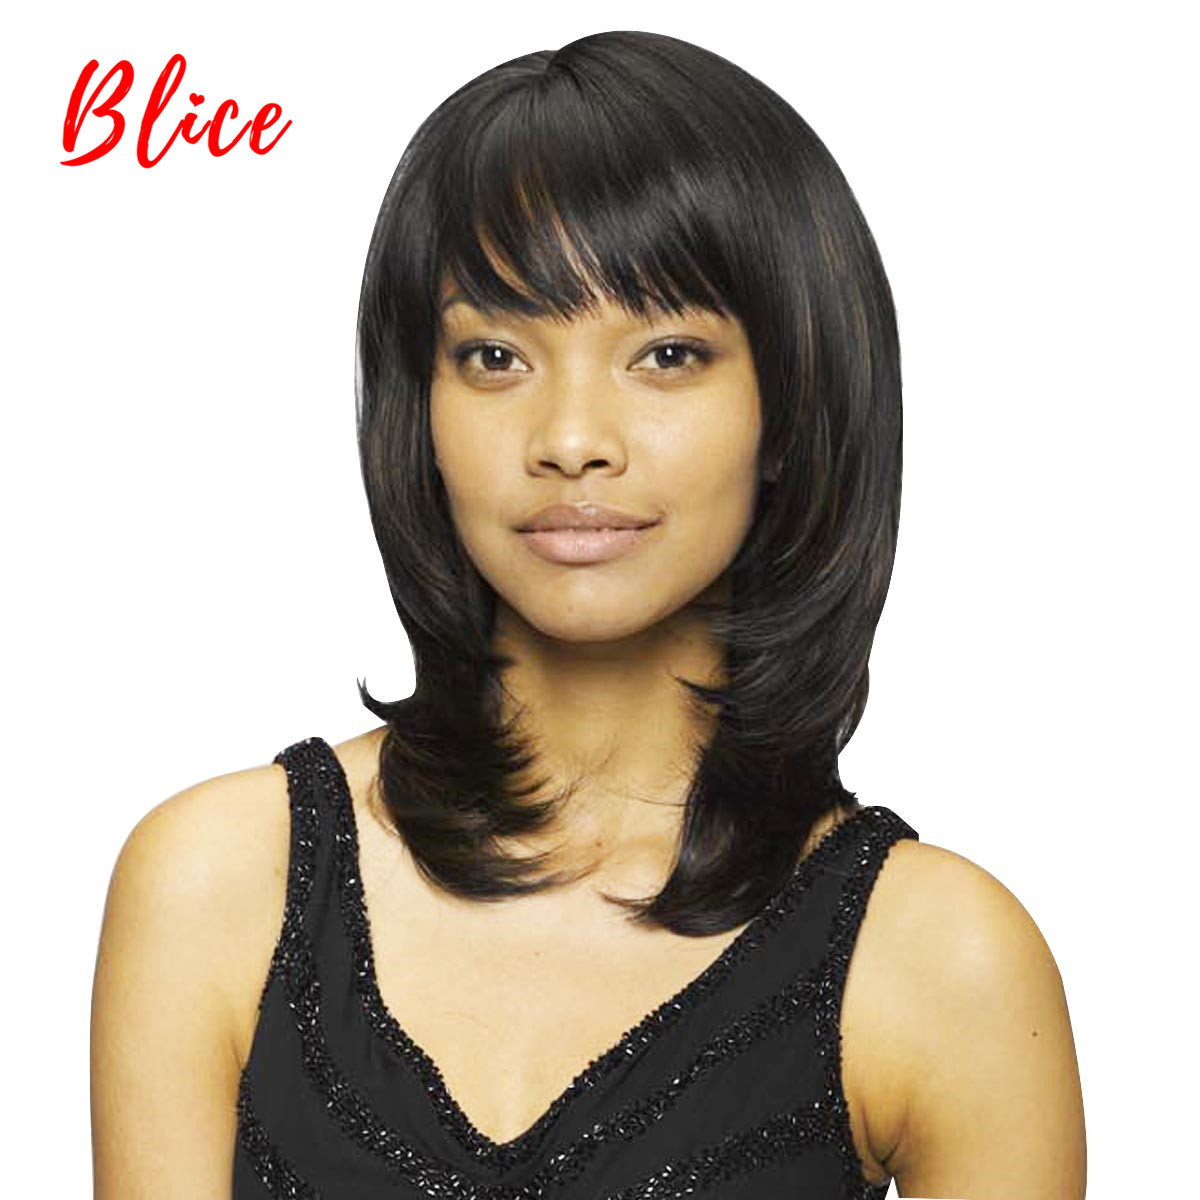 Blice For Women Synthetic Wigs Medium 10 Inch Natural Wave Wig Pure Black Color 1# With Skin-Top Right-Side Bang  Heat Resistant